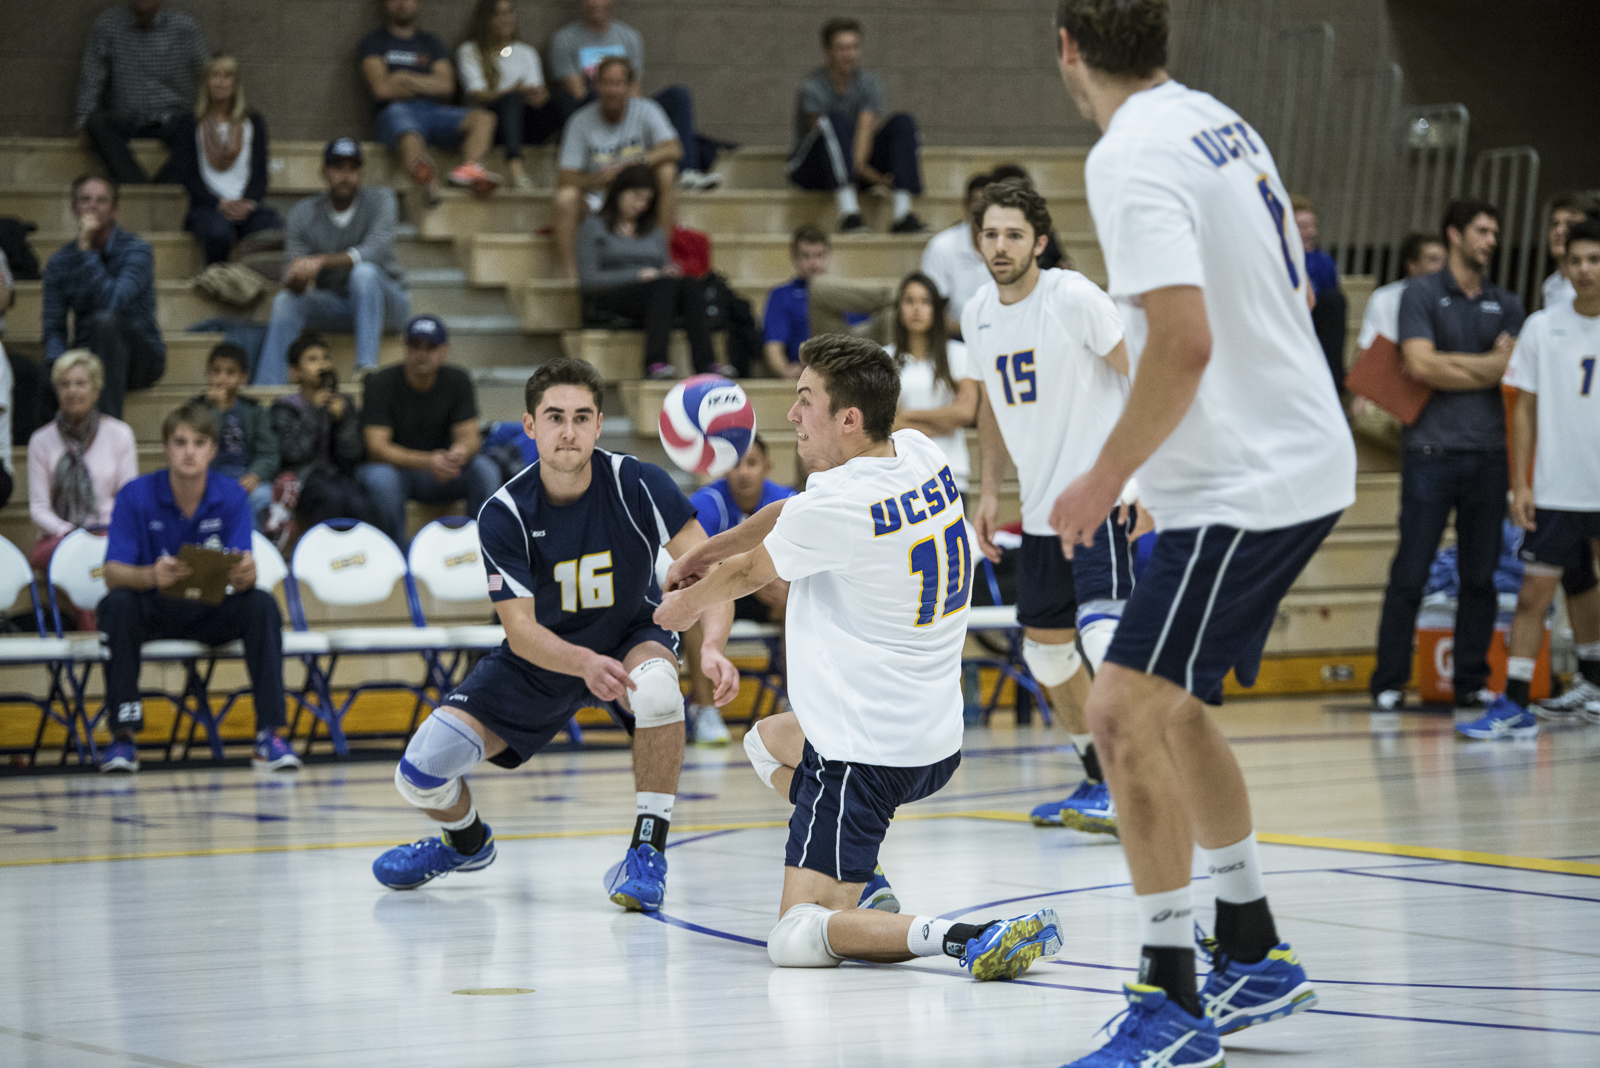 Jacob Delson rotates into the pass, keeping the fast jump serve in play. Eric Swenson/Daily Nexus